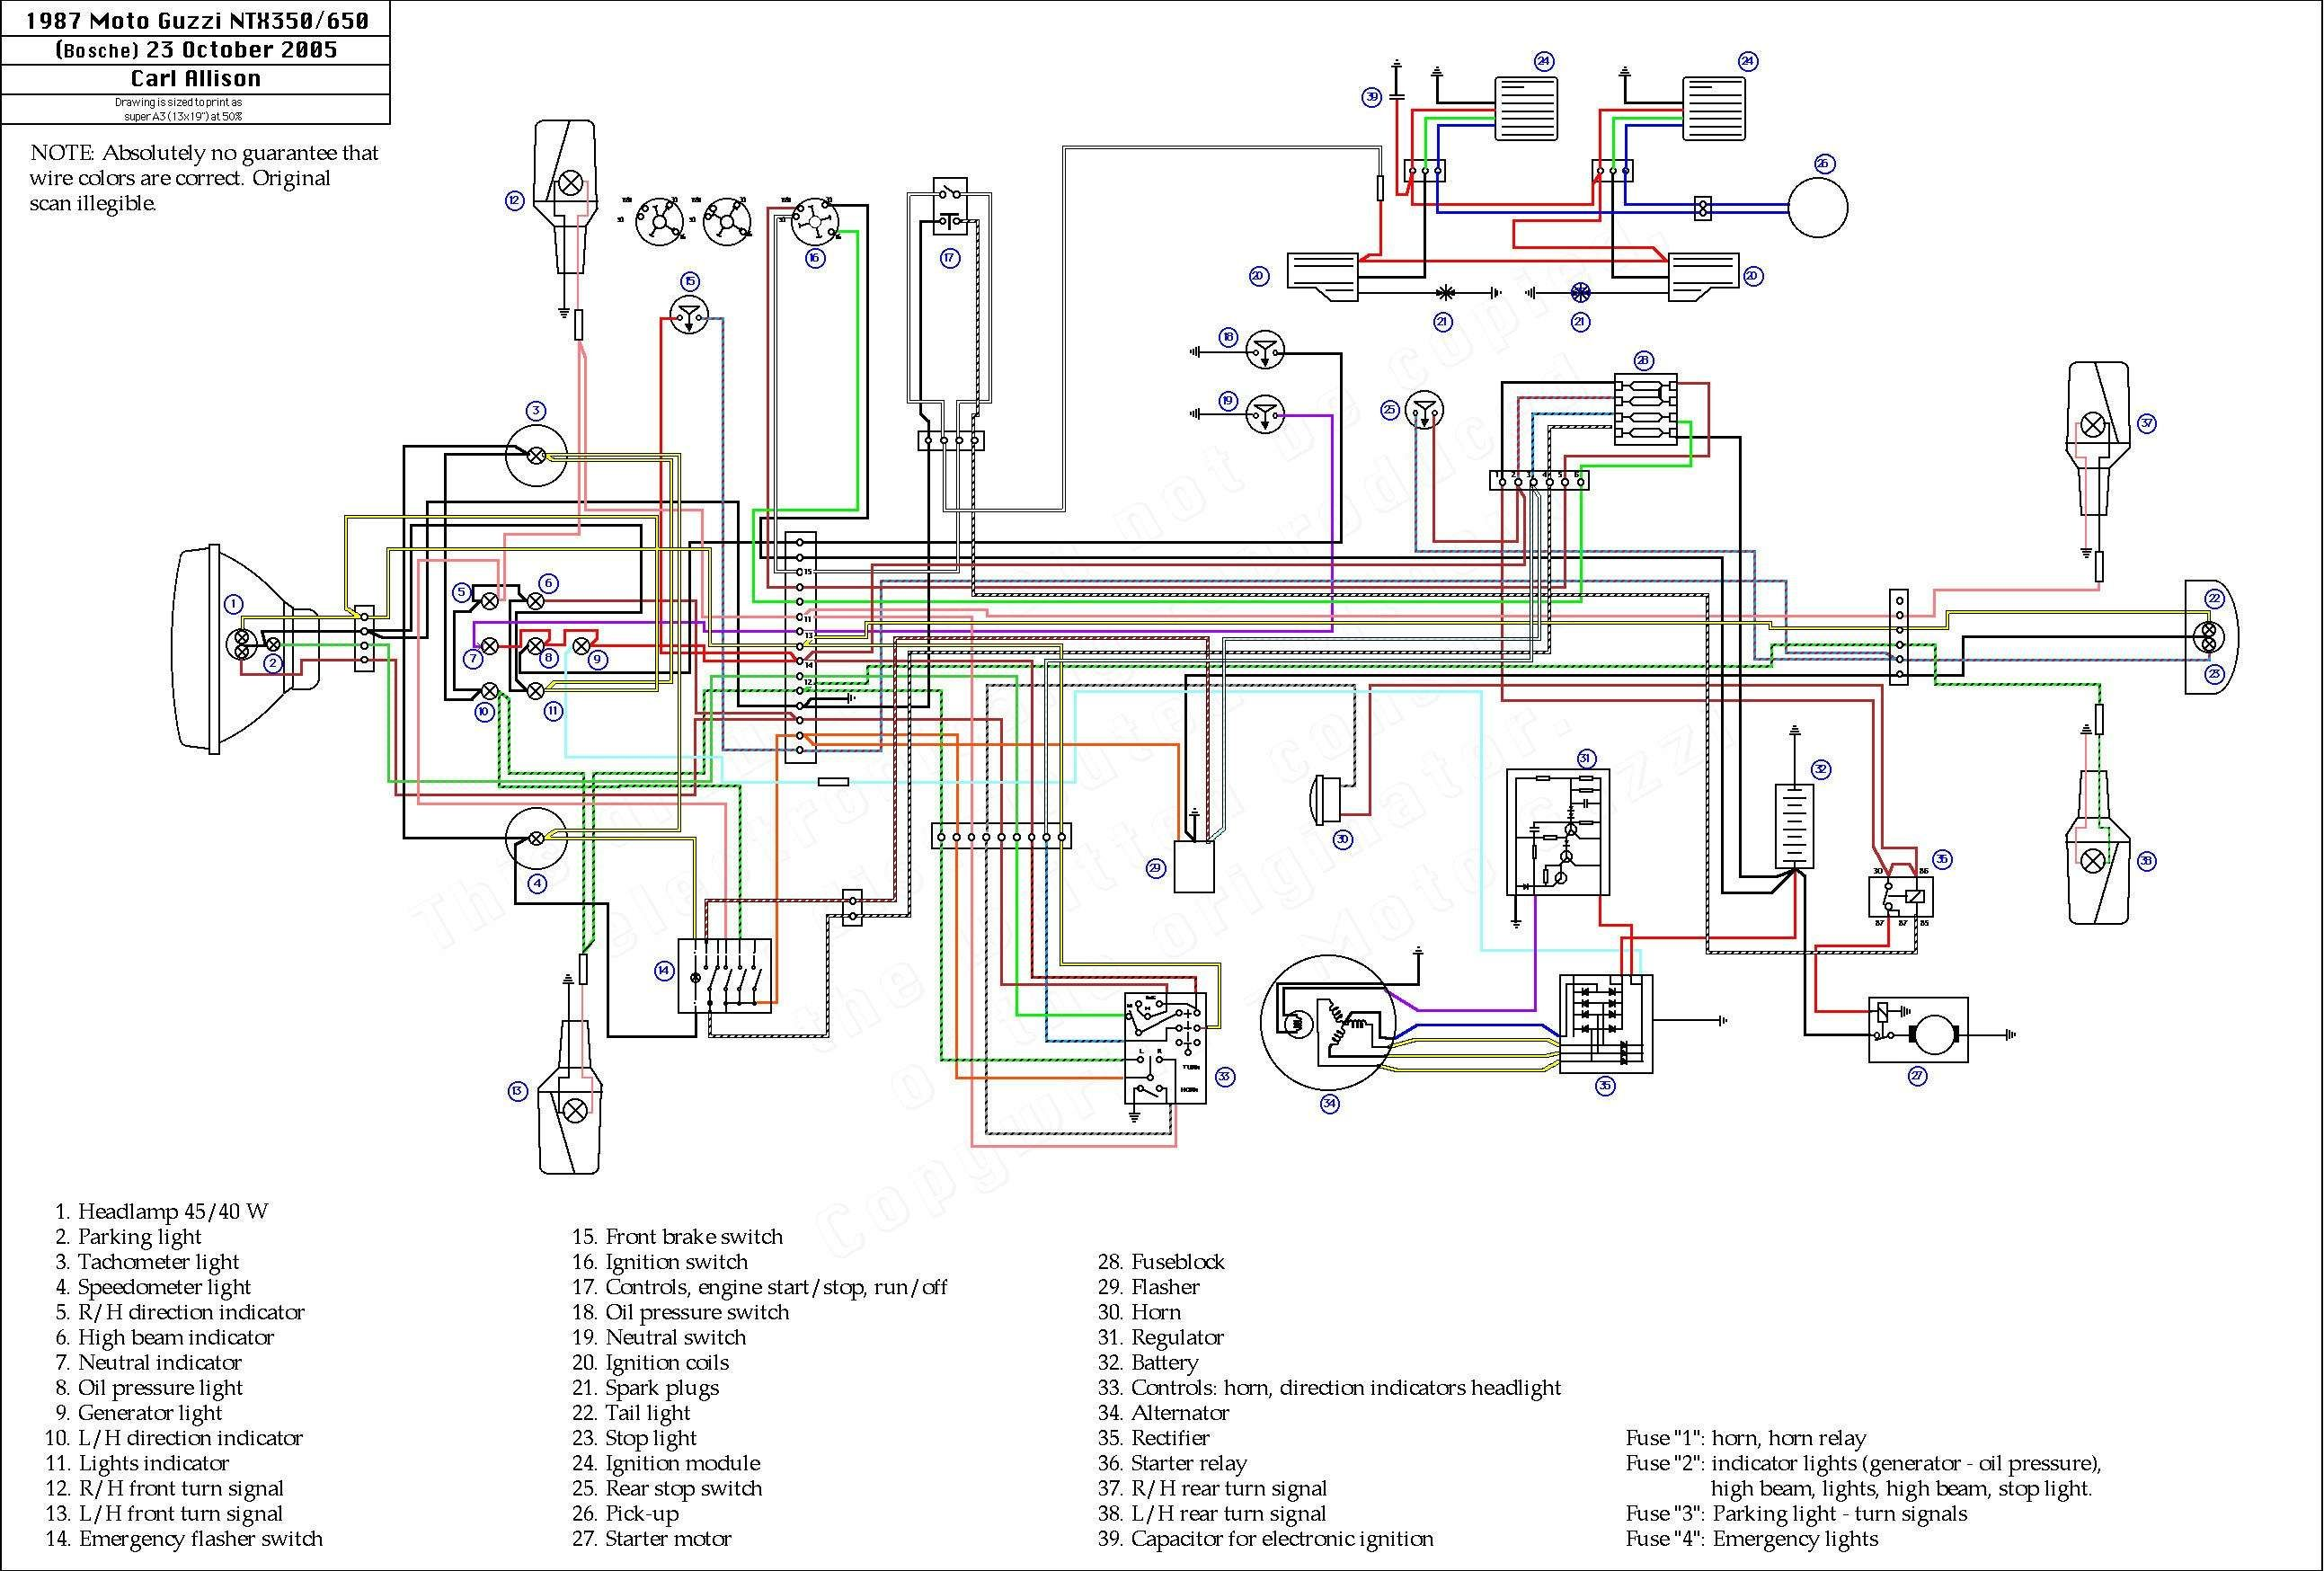 Wiring Diagram Electrical Wiring Diagram Electrical Electrical Diagram Electrical Wiring Diagram Diagram